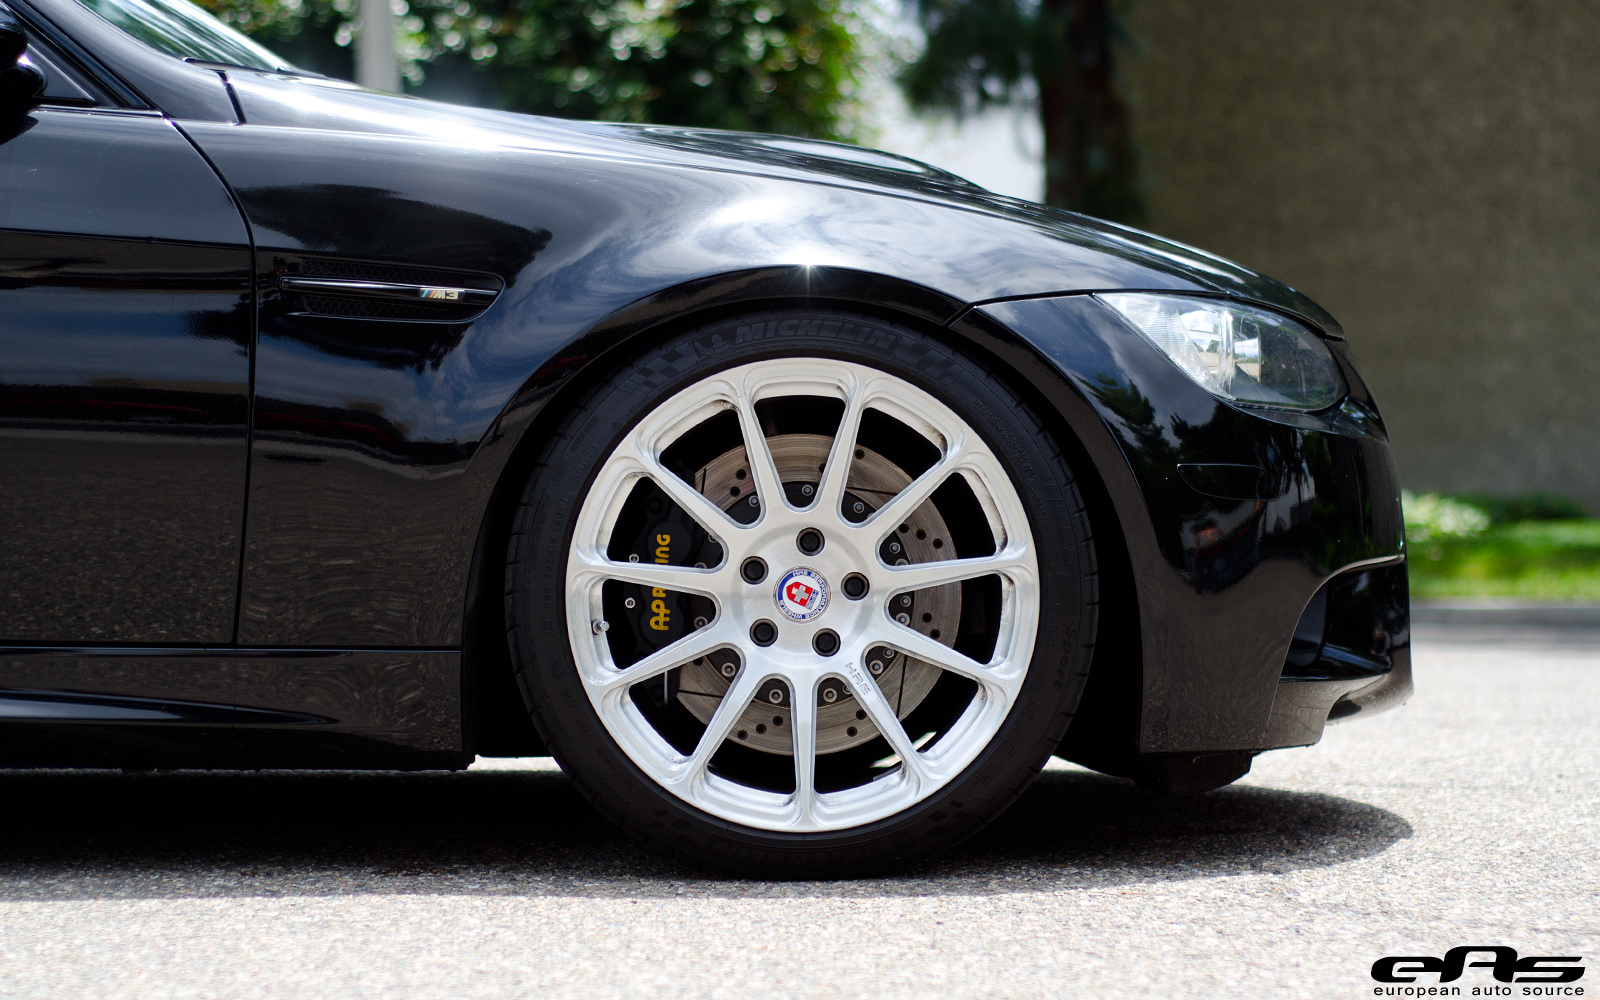 Jet Black Bmw E90 M3 Rides On White Hre Wheels From Eas